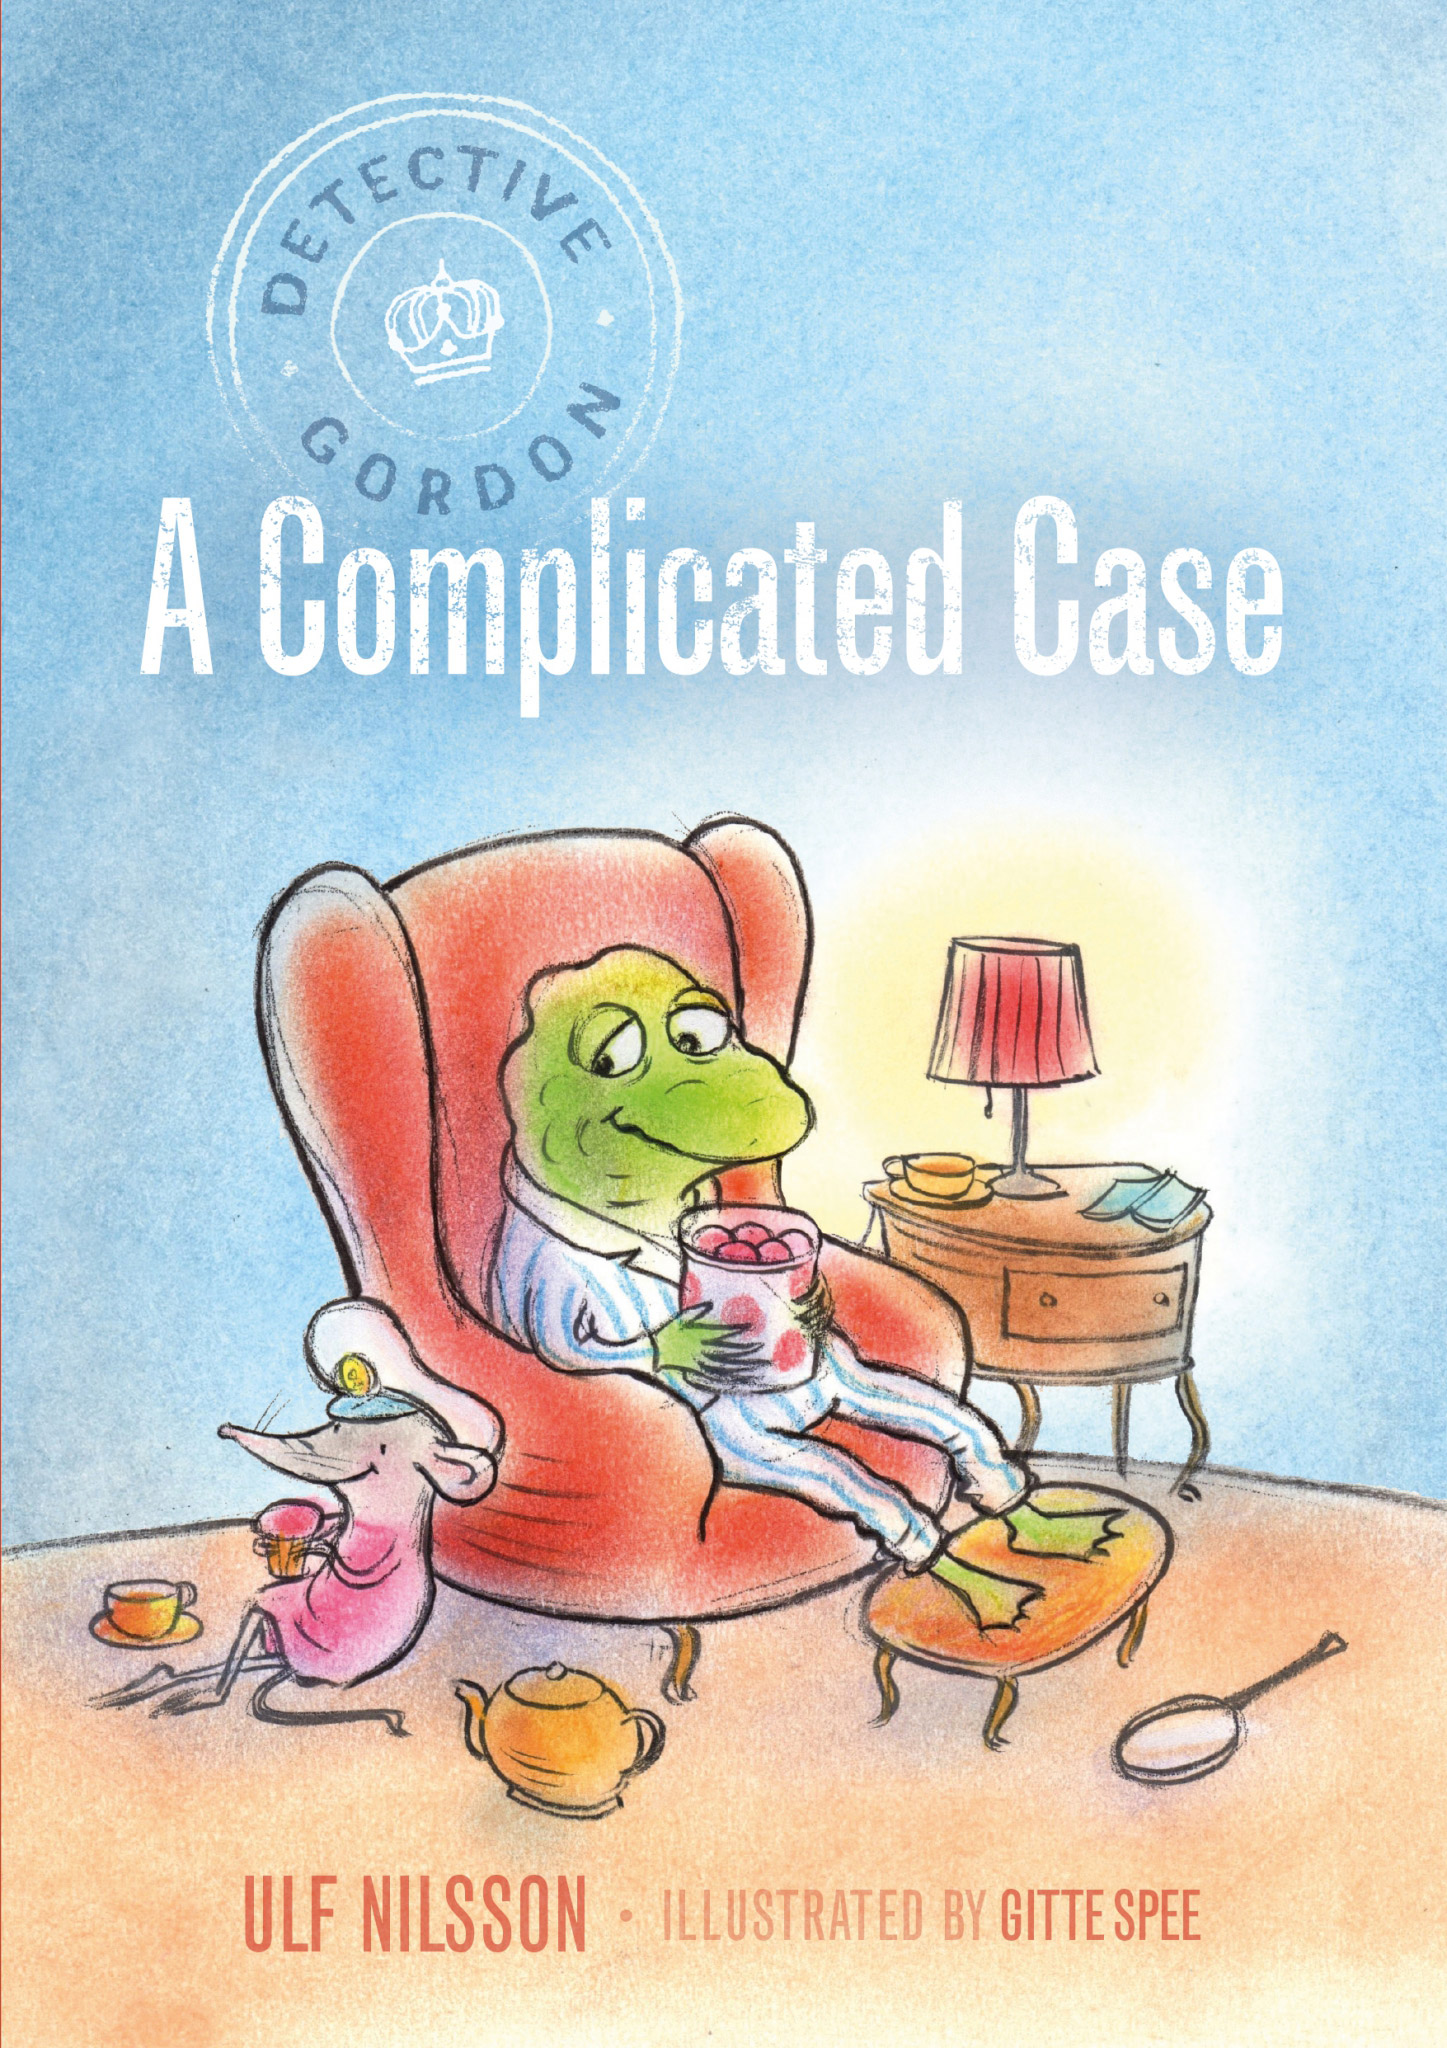 detective gordon a complicated case book, Ulf Nilsson, Gitte Spec, chapter books for kids